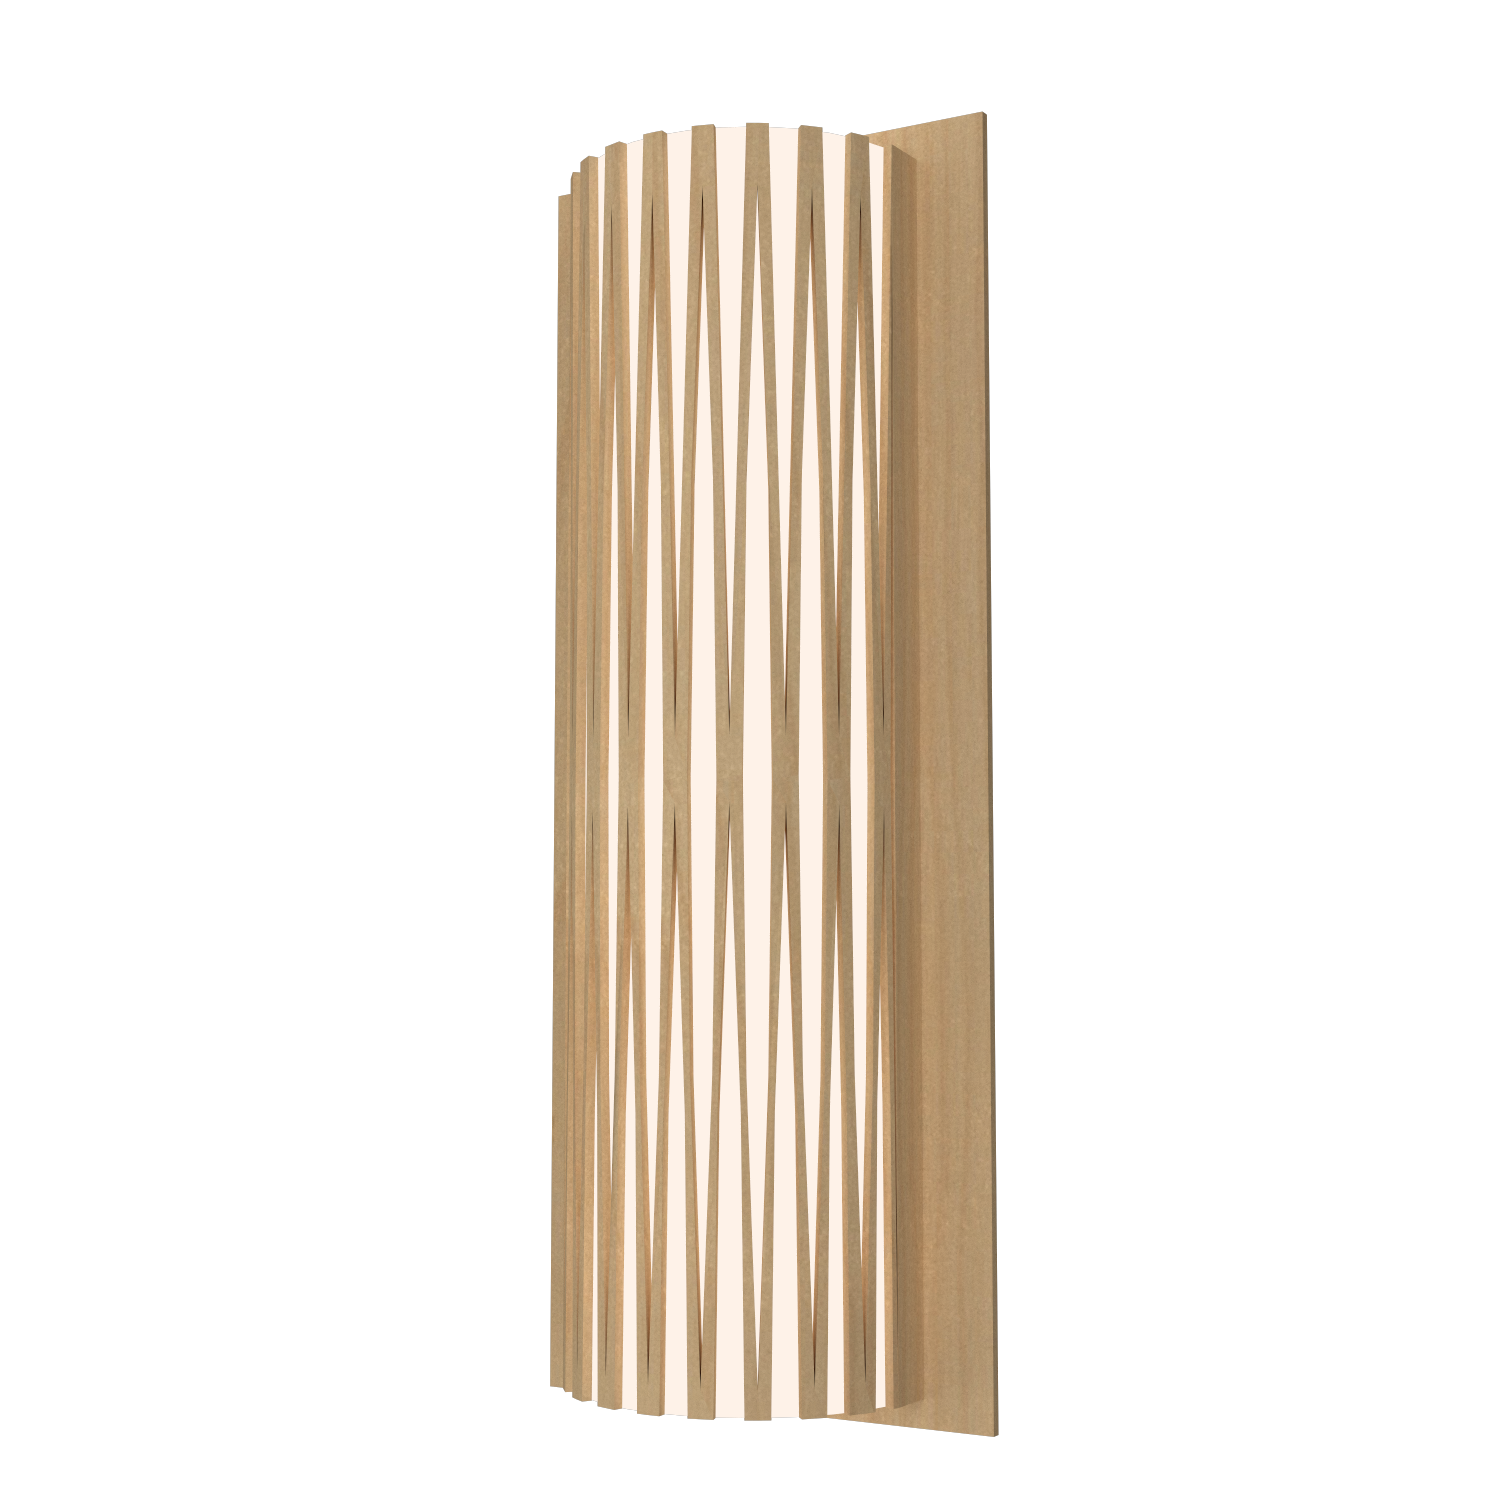 Wall Lamp Accord Living Hinges 4071 - Living Hinges Line Accord Lighting | 34. Maple